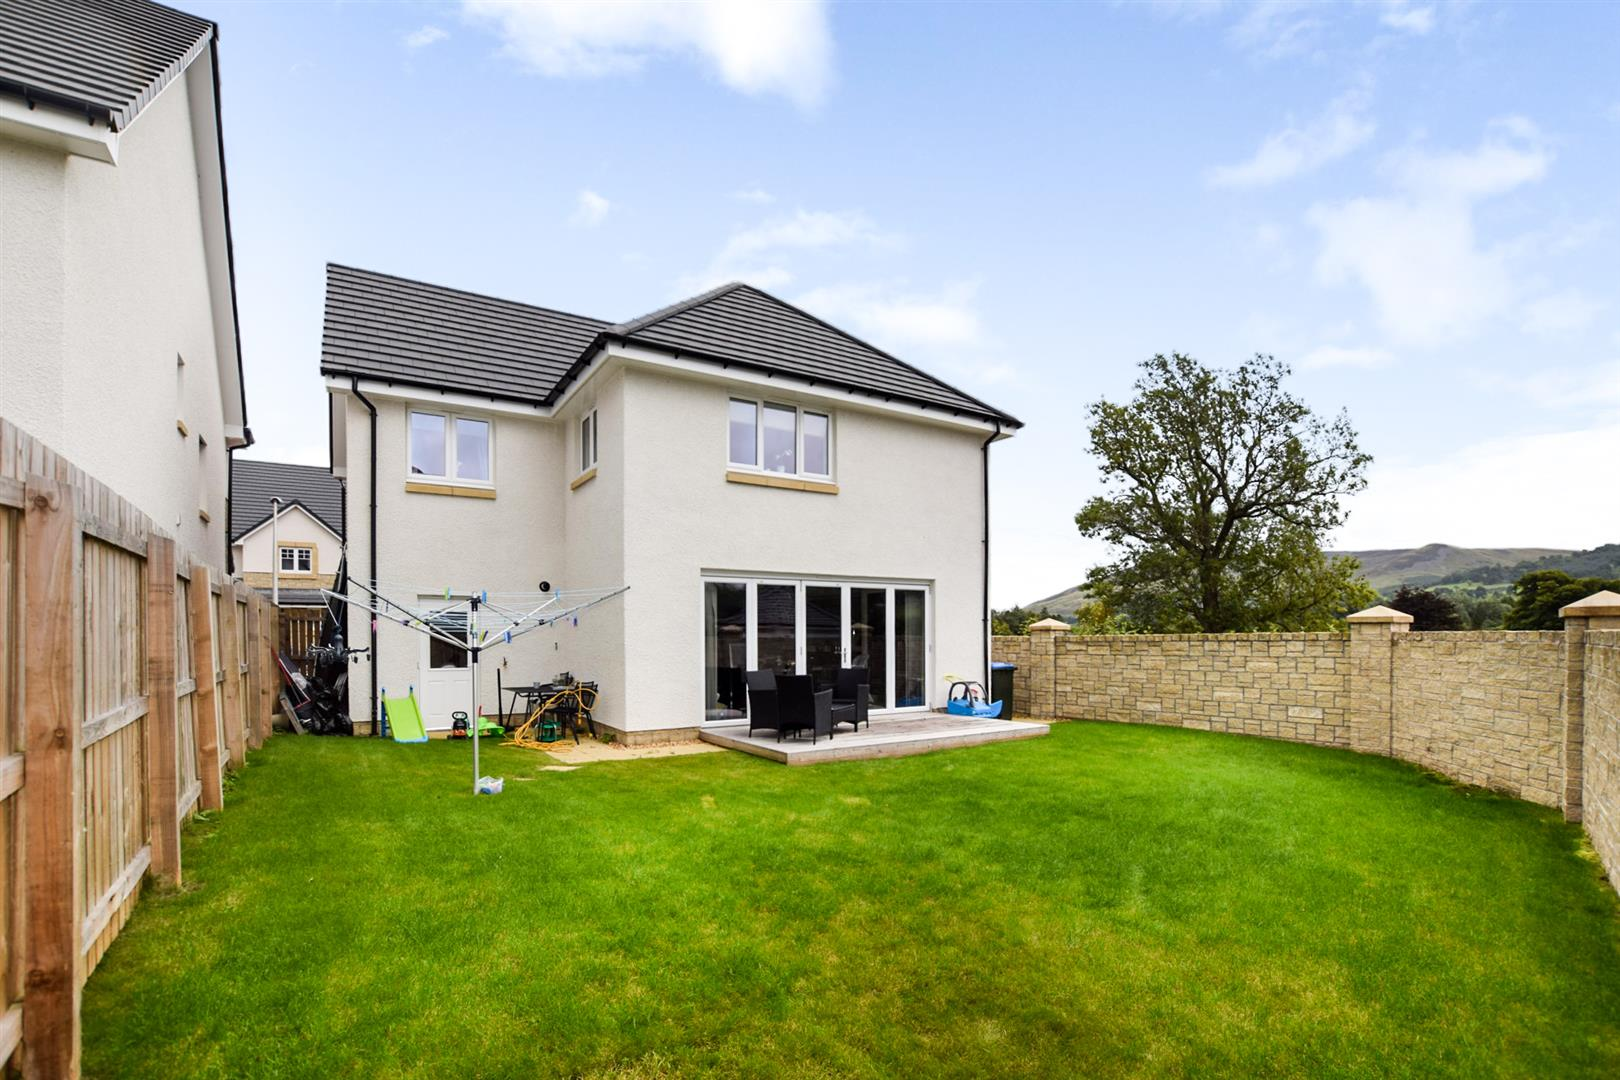 8, Millview Close, Auchterarder, Perthshire, PH3 1FR, UK